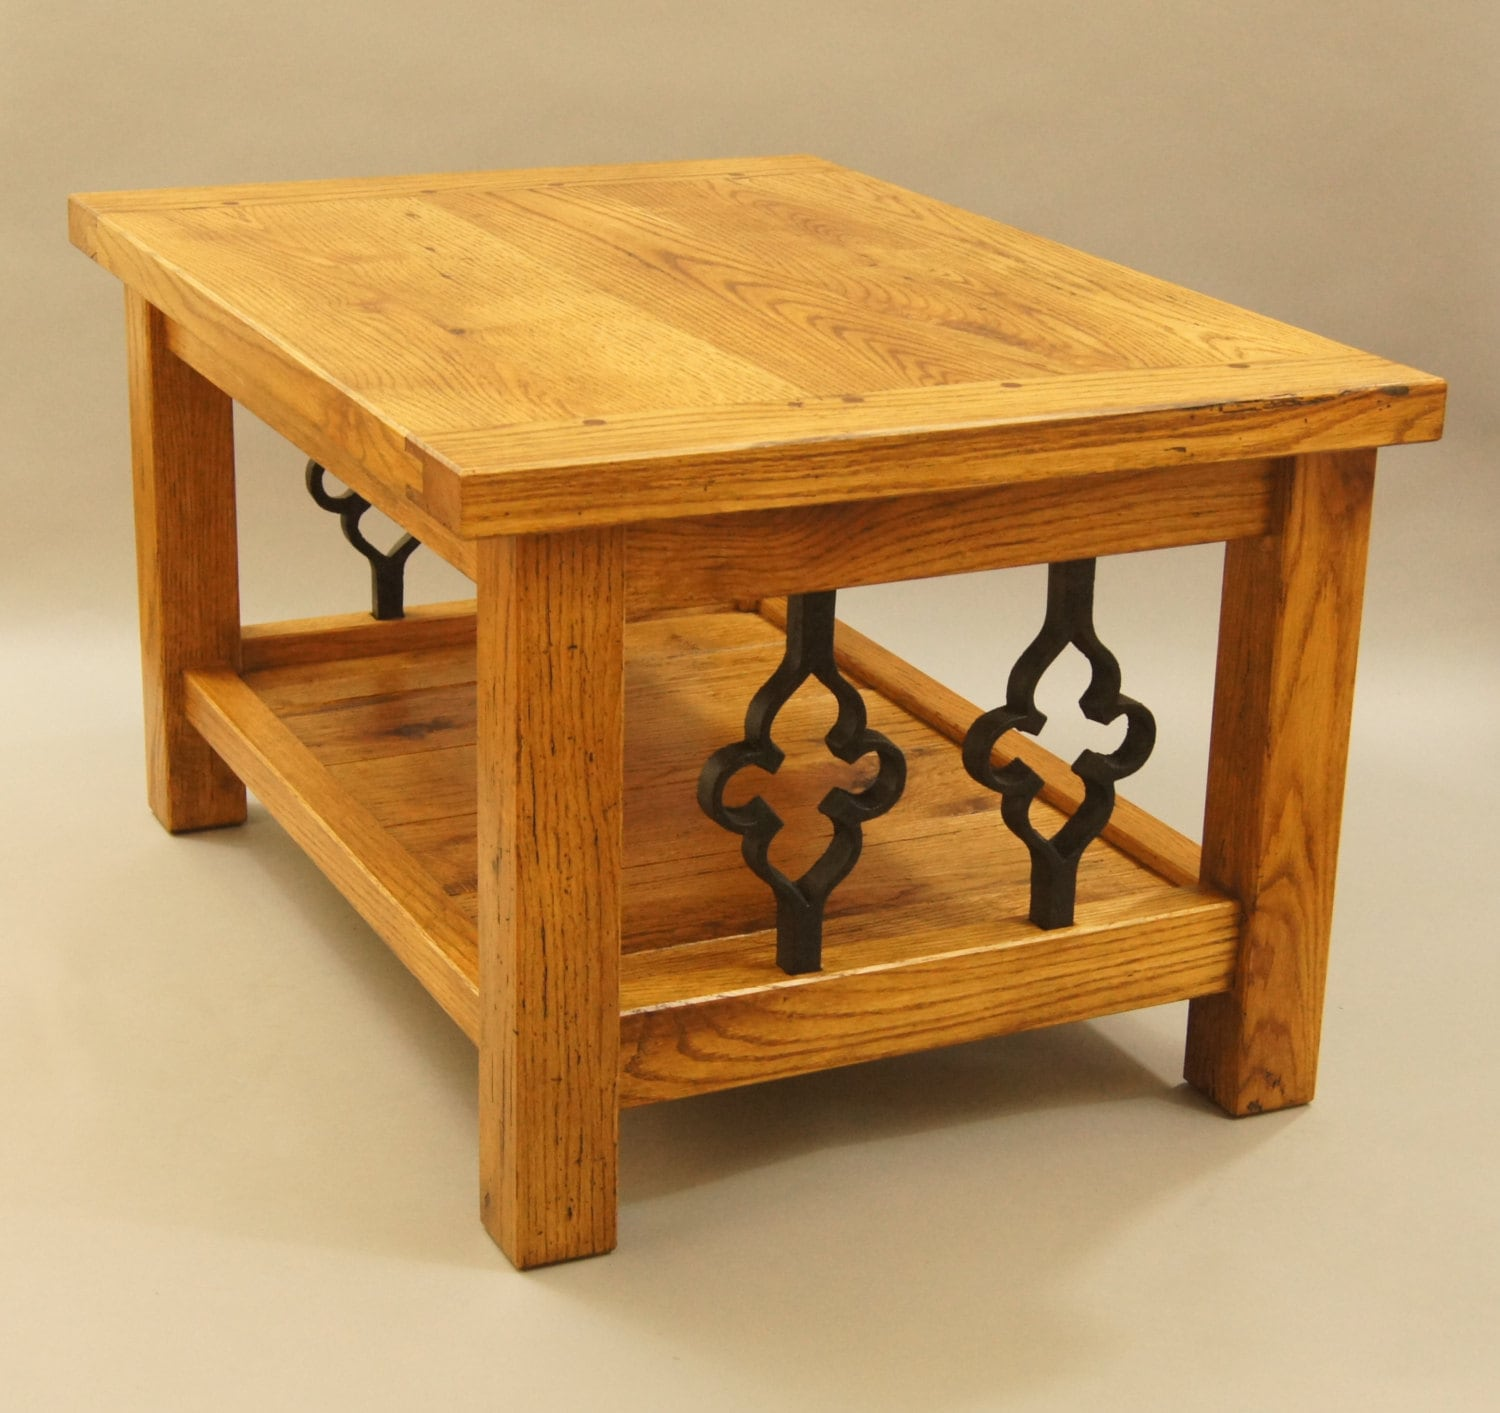 49 Coffee Table Nickel Finish Solid Iron Casters: Coffee Table Made With Solid, Reclaimed Oak And Gothic